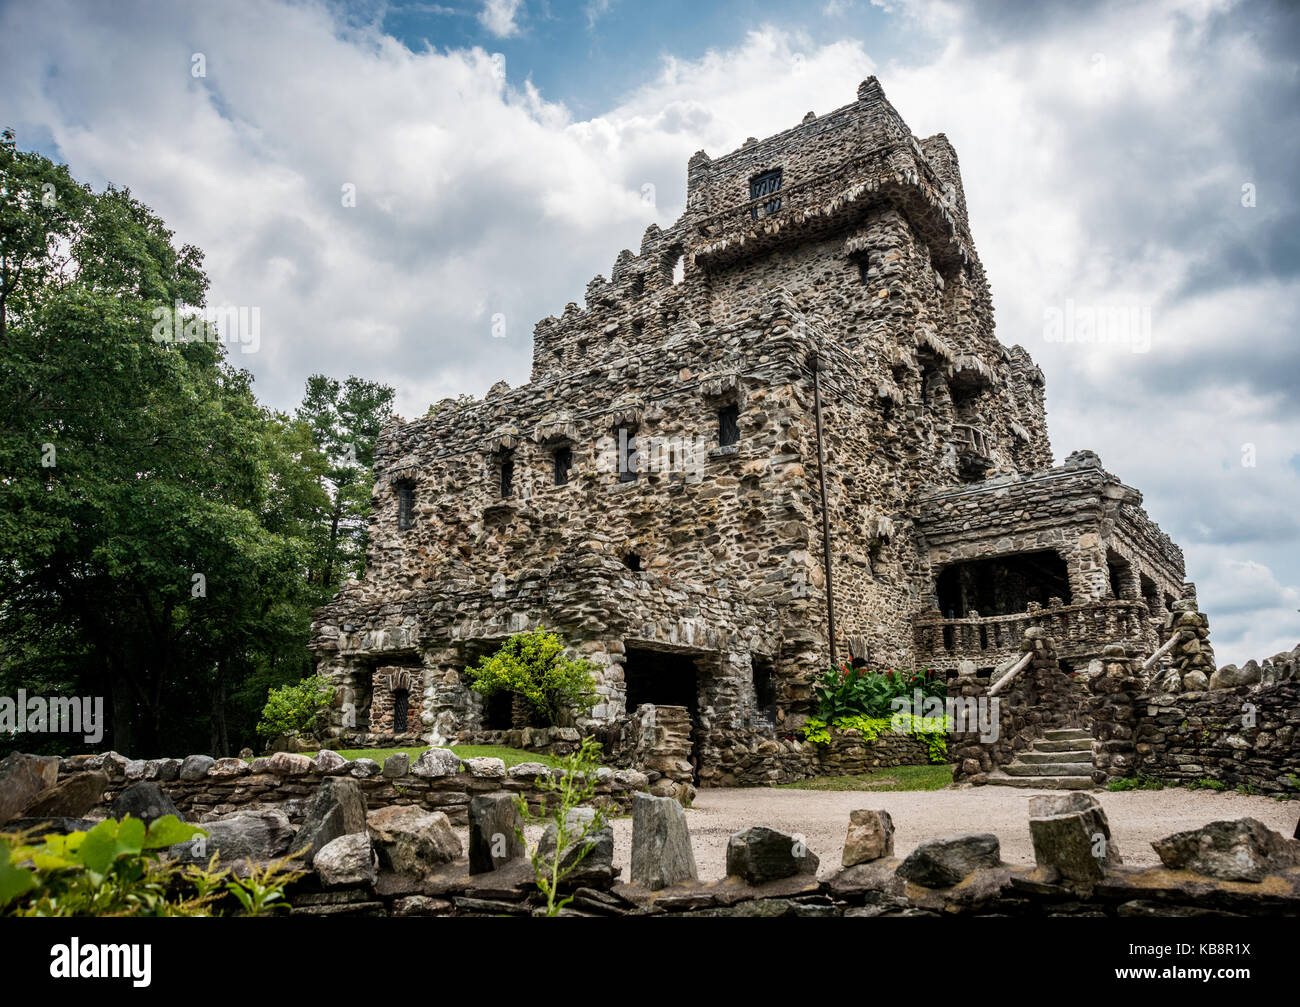 Gillette Castle in Connecticut - Stock Image